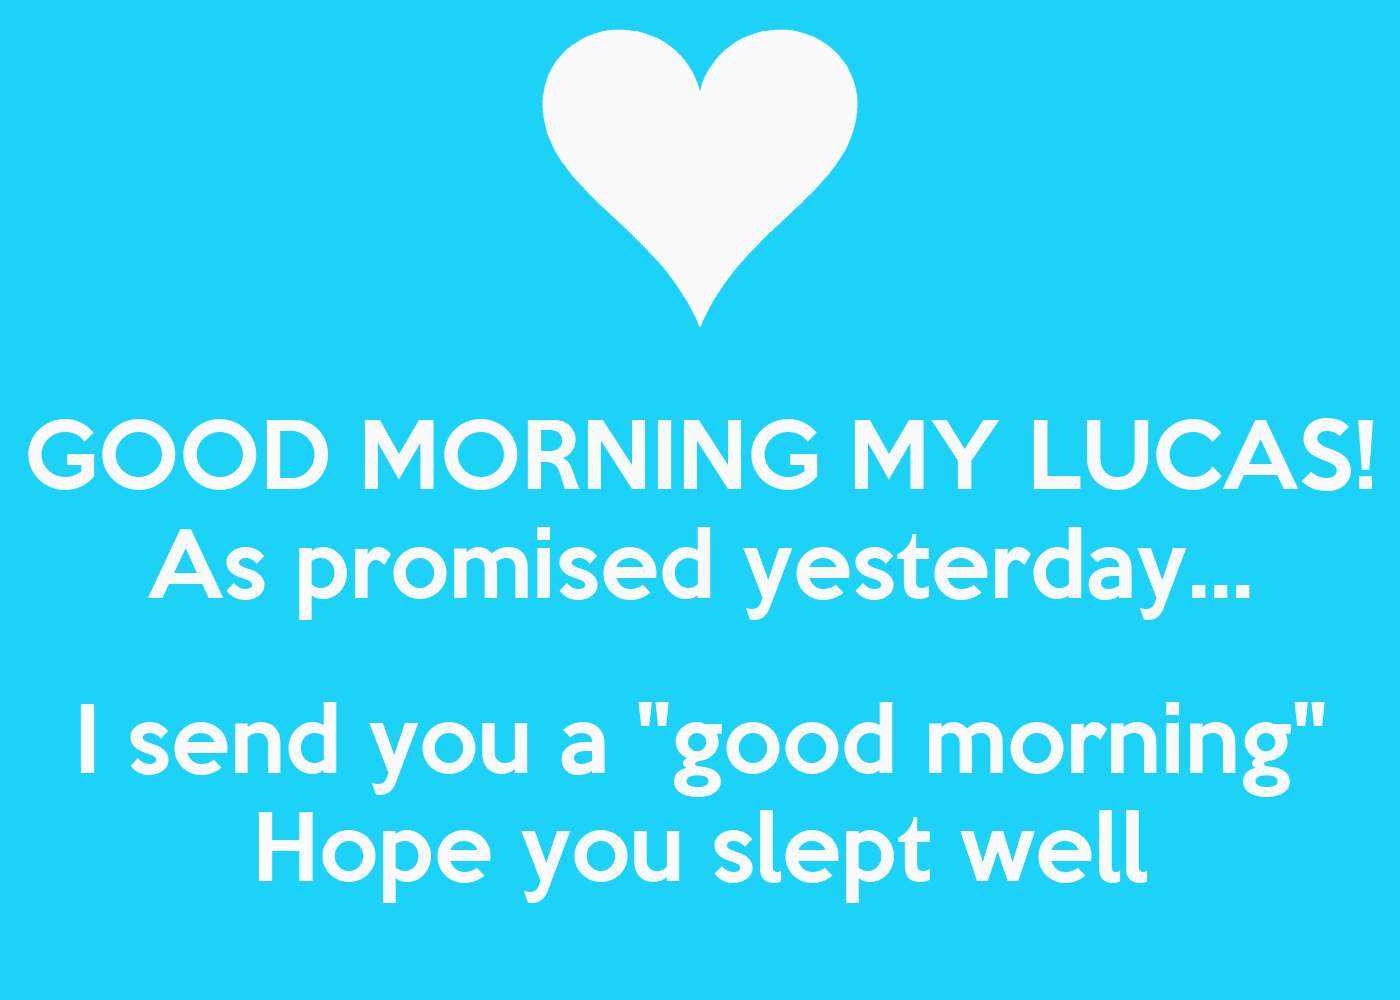 Good Morning My Love I Hope You Slept Well : Good morning my lucas as promised yesterday i send you